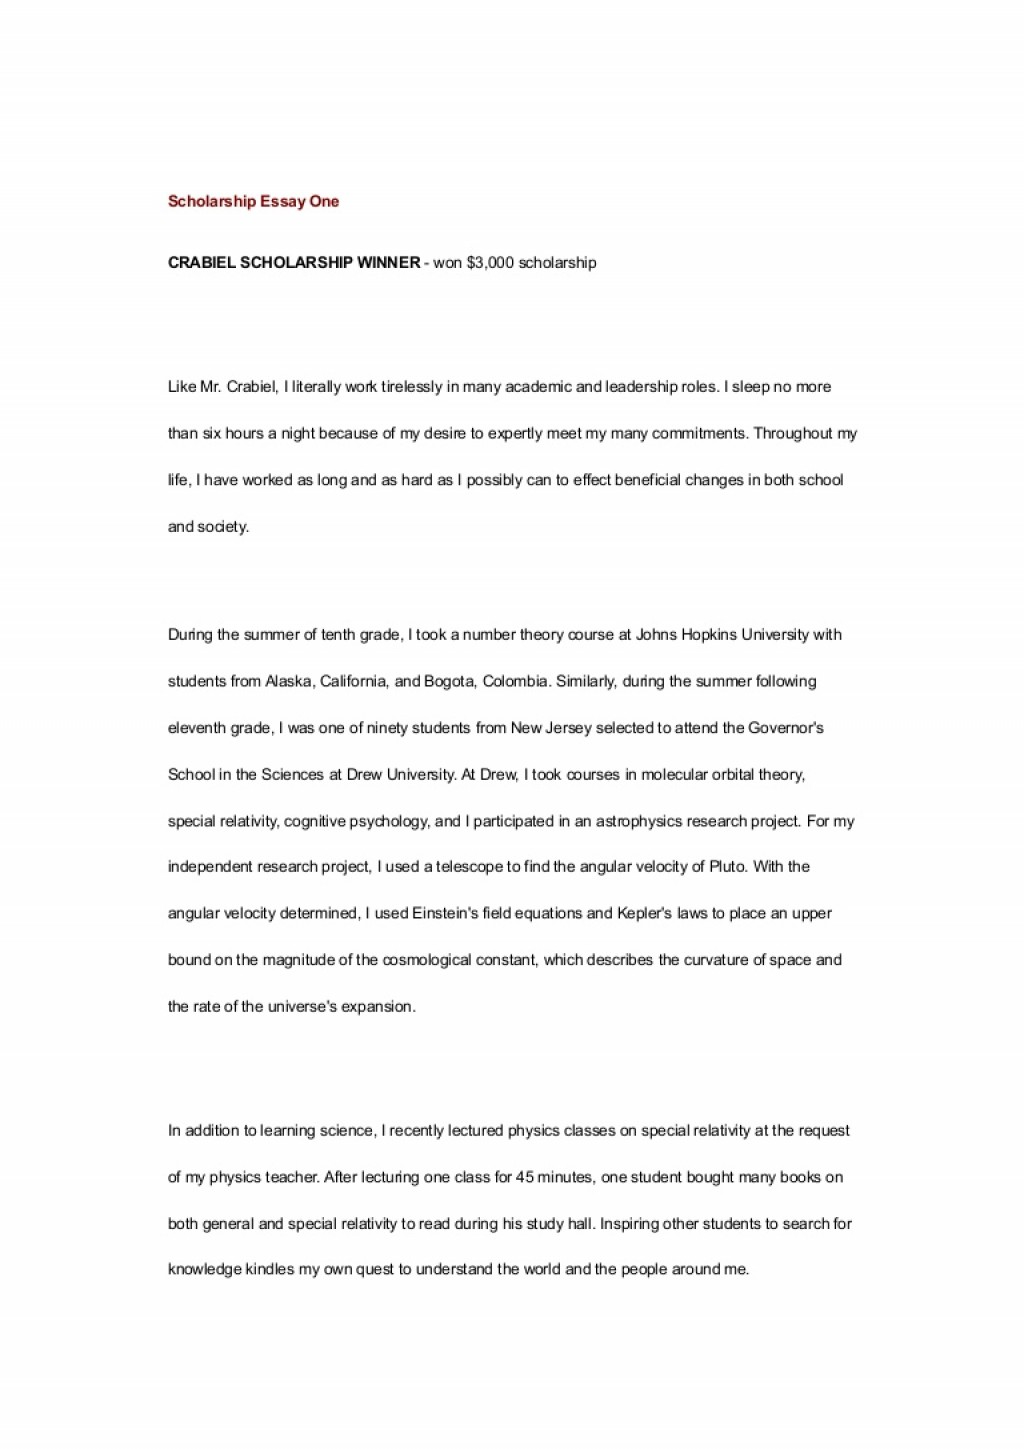 006 Sample Scholarship Essays Based Financial Need Scholarshipessayone Phpapp01 Thumbnail Essay Impressive Needs Large